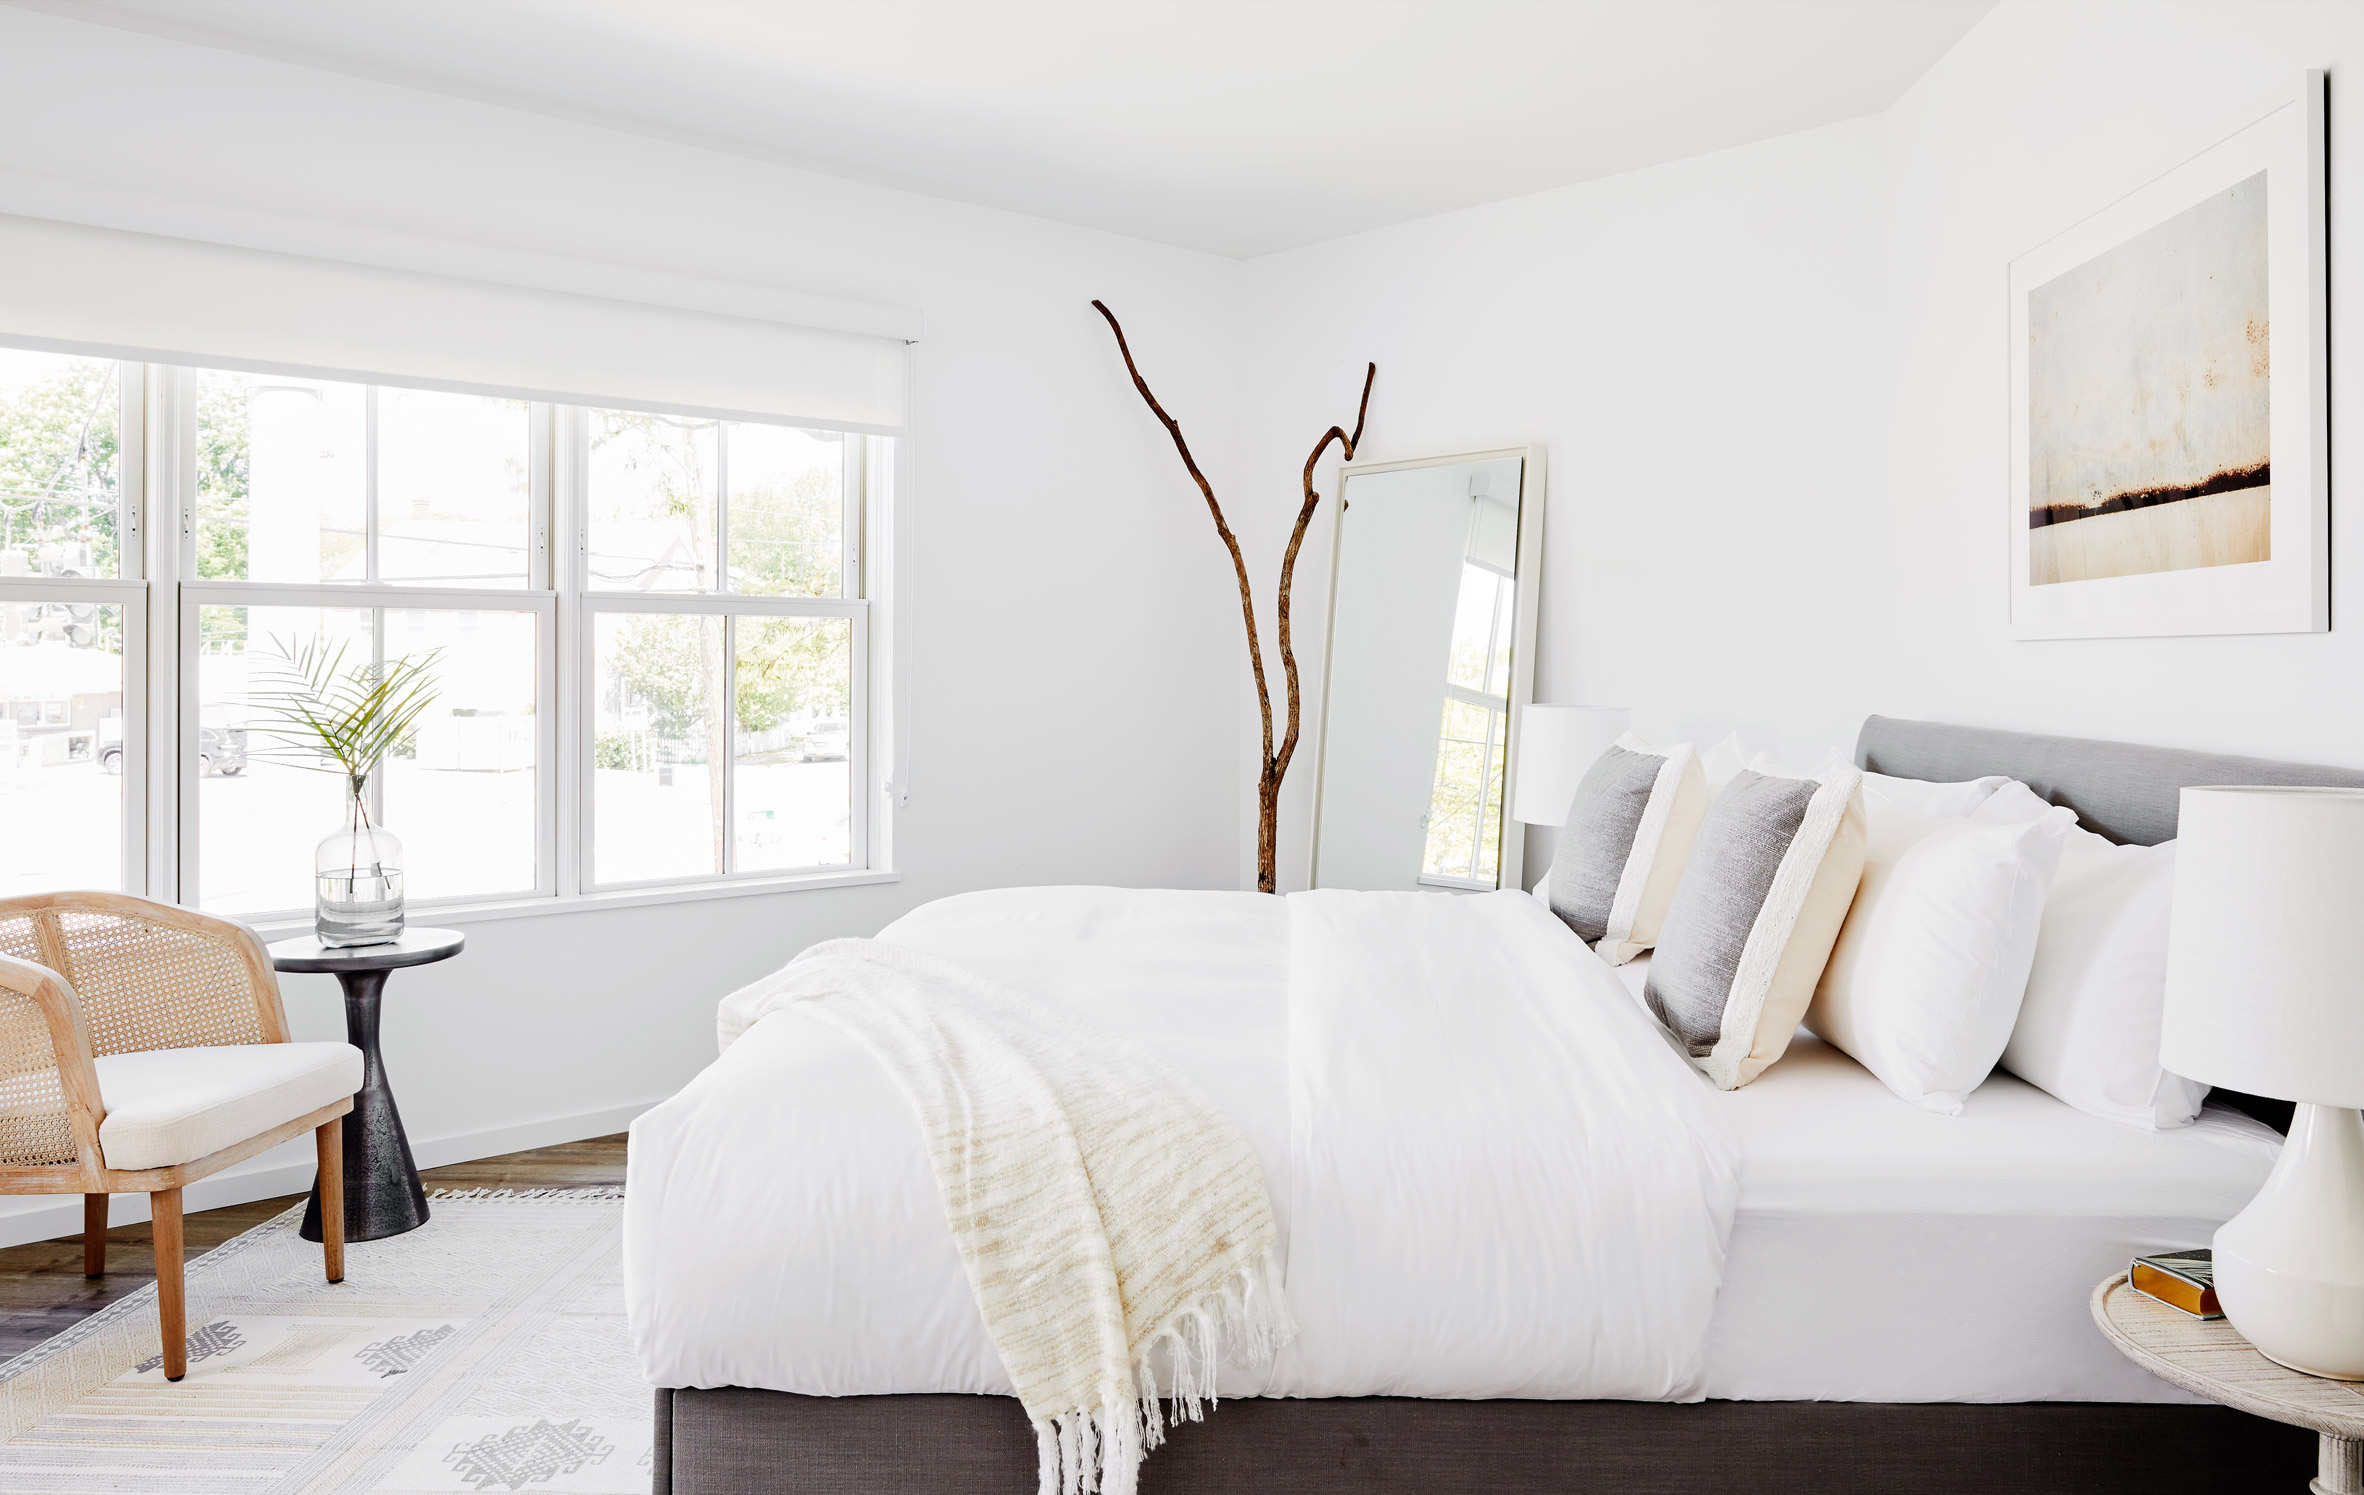 the-menhaden-boutique-hotel-long-island-kristen-pennessi_dezeen_2364_col_4-7